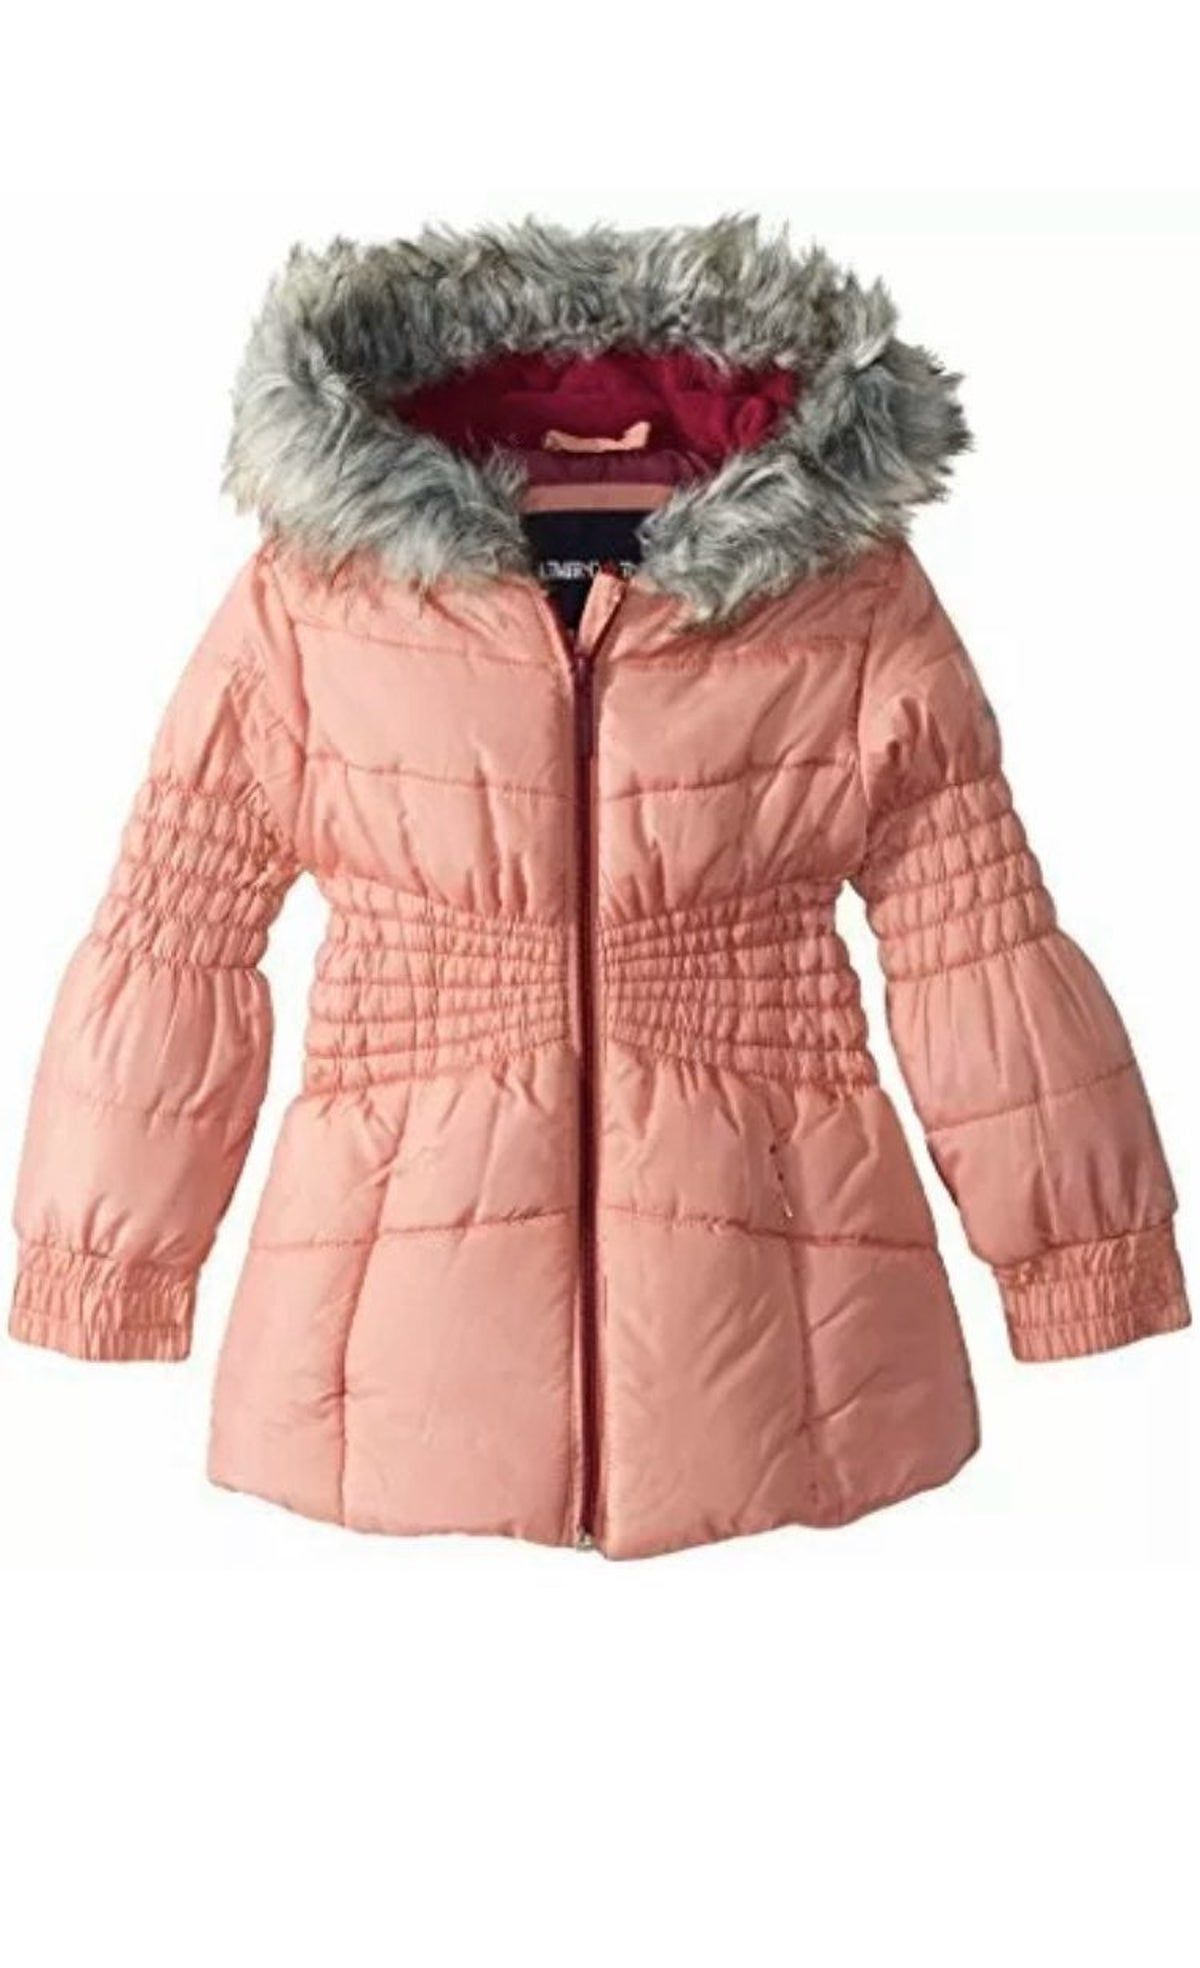 Pin By Bhavay On New 2021 Pink Puffer Jacket Jackets Puffer Jackets [ 1968 x 1200 Pixel ]